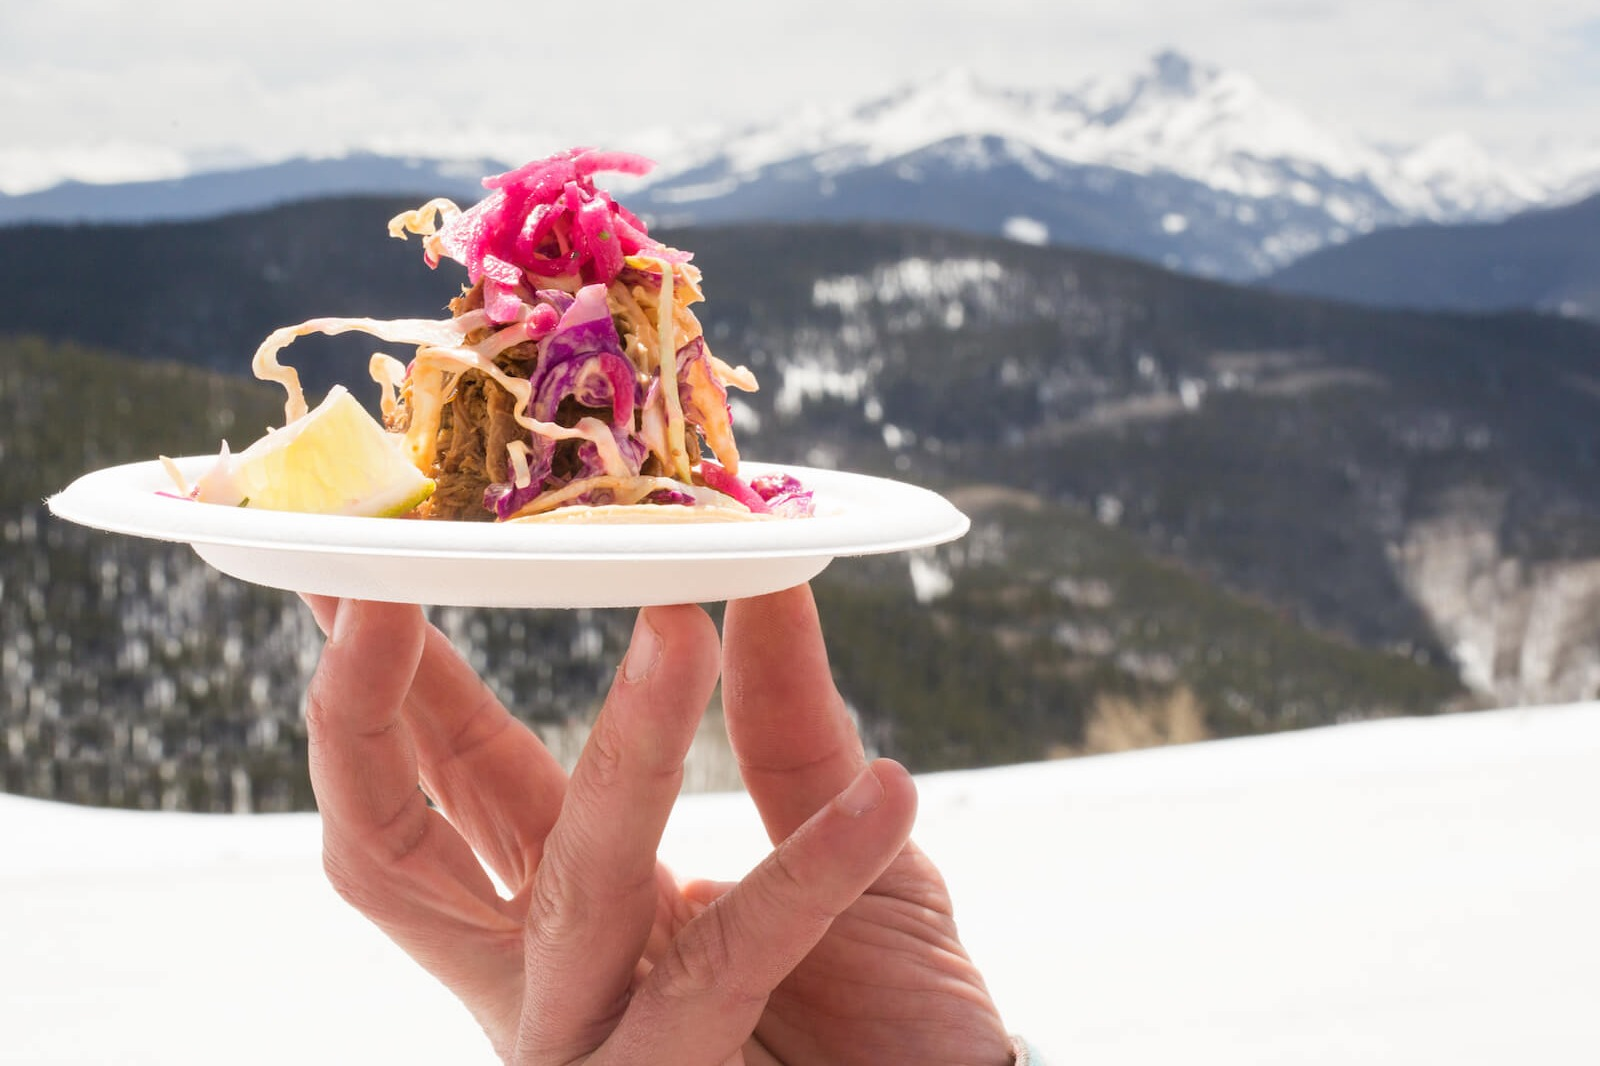 Gourmet food closeup with mountains in the background at Taste of Vail